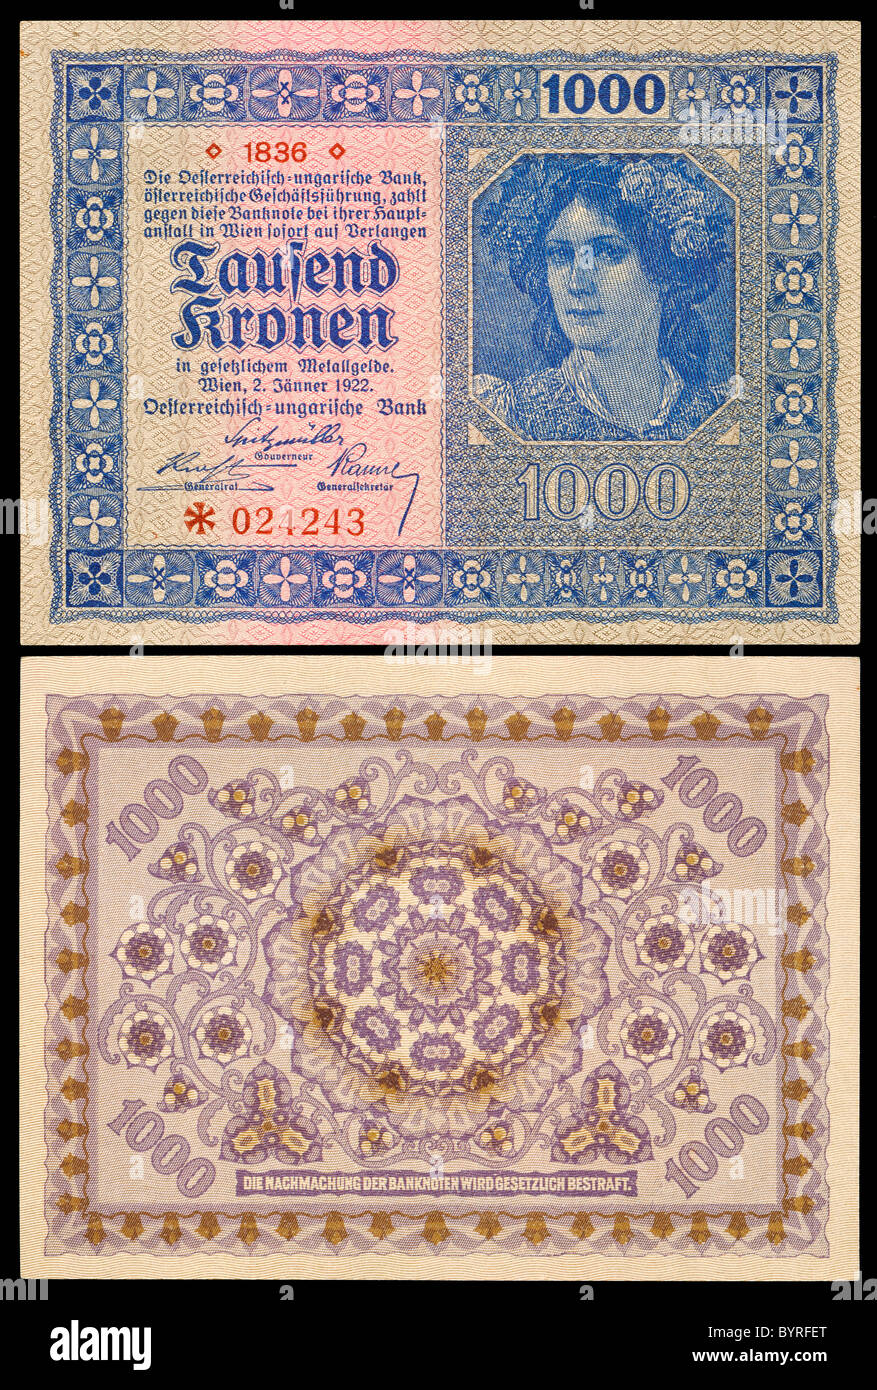 Austro-Hungarian 1000 Kronen / Crown note from 1922 - Stock Image